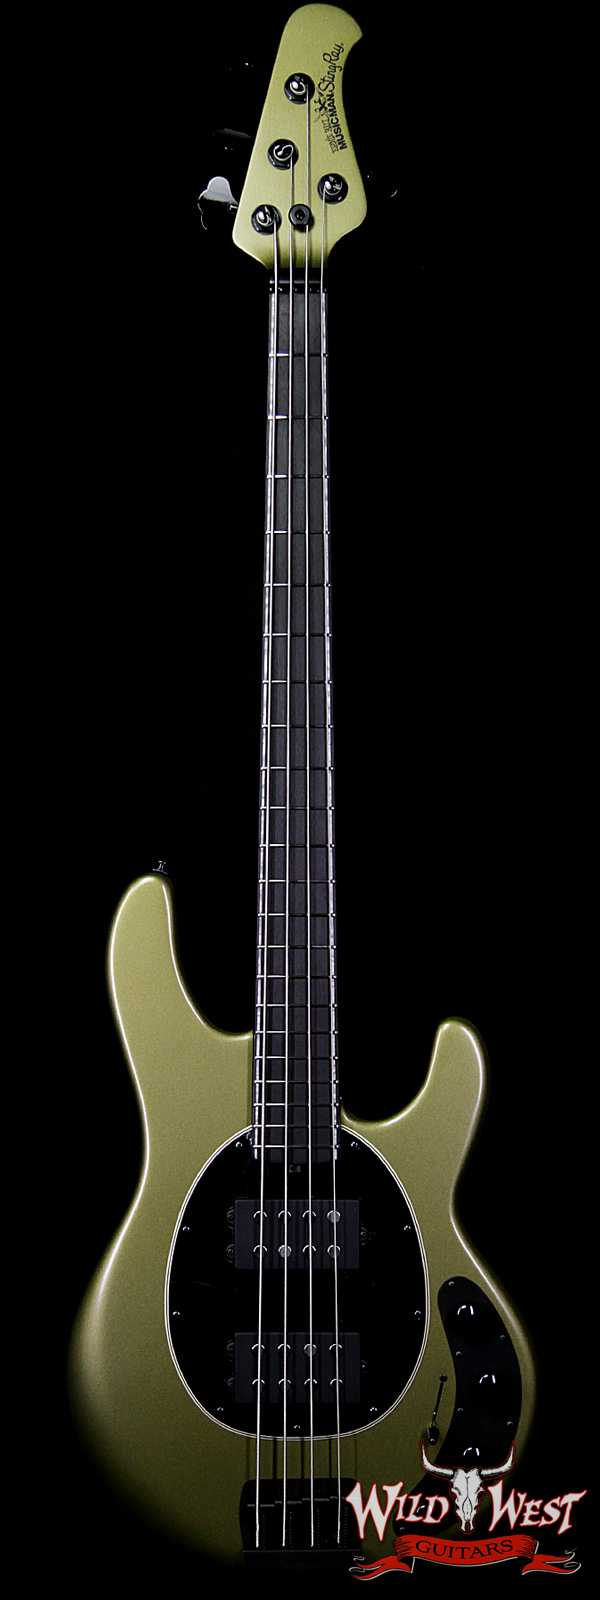 Ernie Ball Music Man BFR LTD 73 of 98 StingRay Bass Special 4 HH Dargie Delight 3